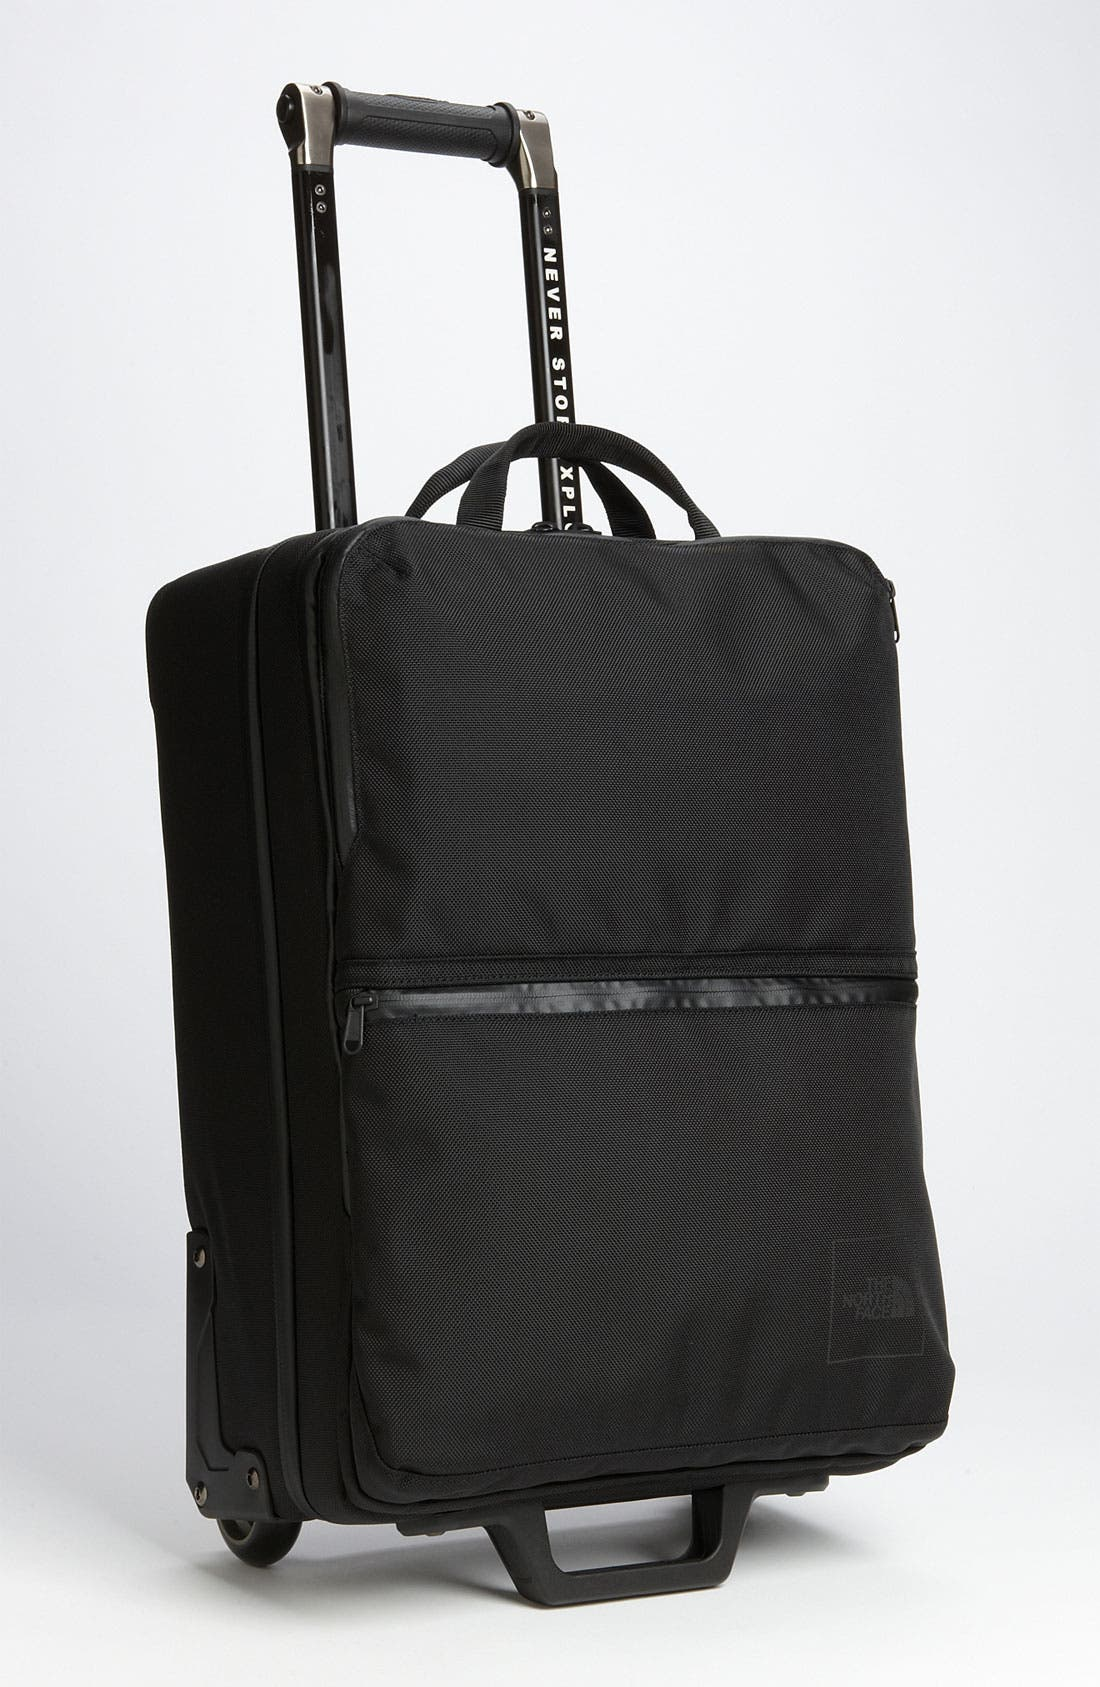 Alternate Image 1 Selected - The North Face 'Shuttle Roller' Wheeled Carry-On